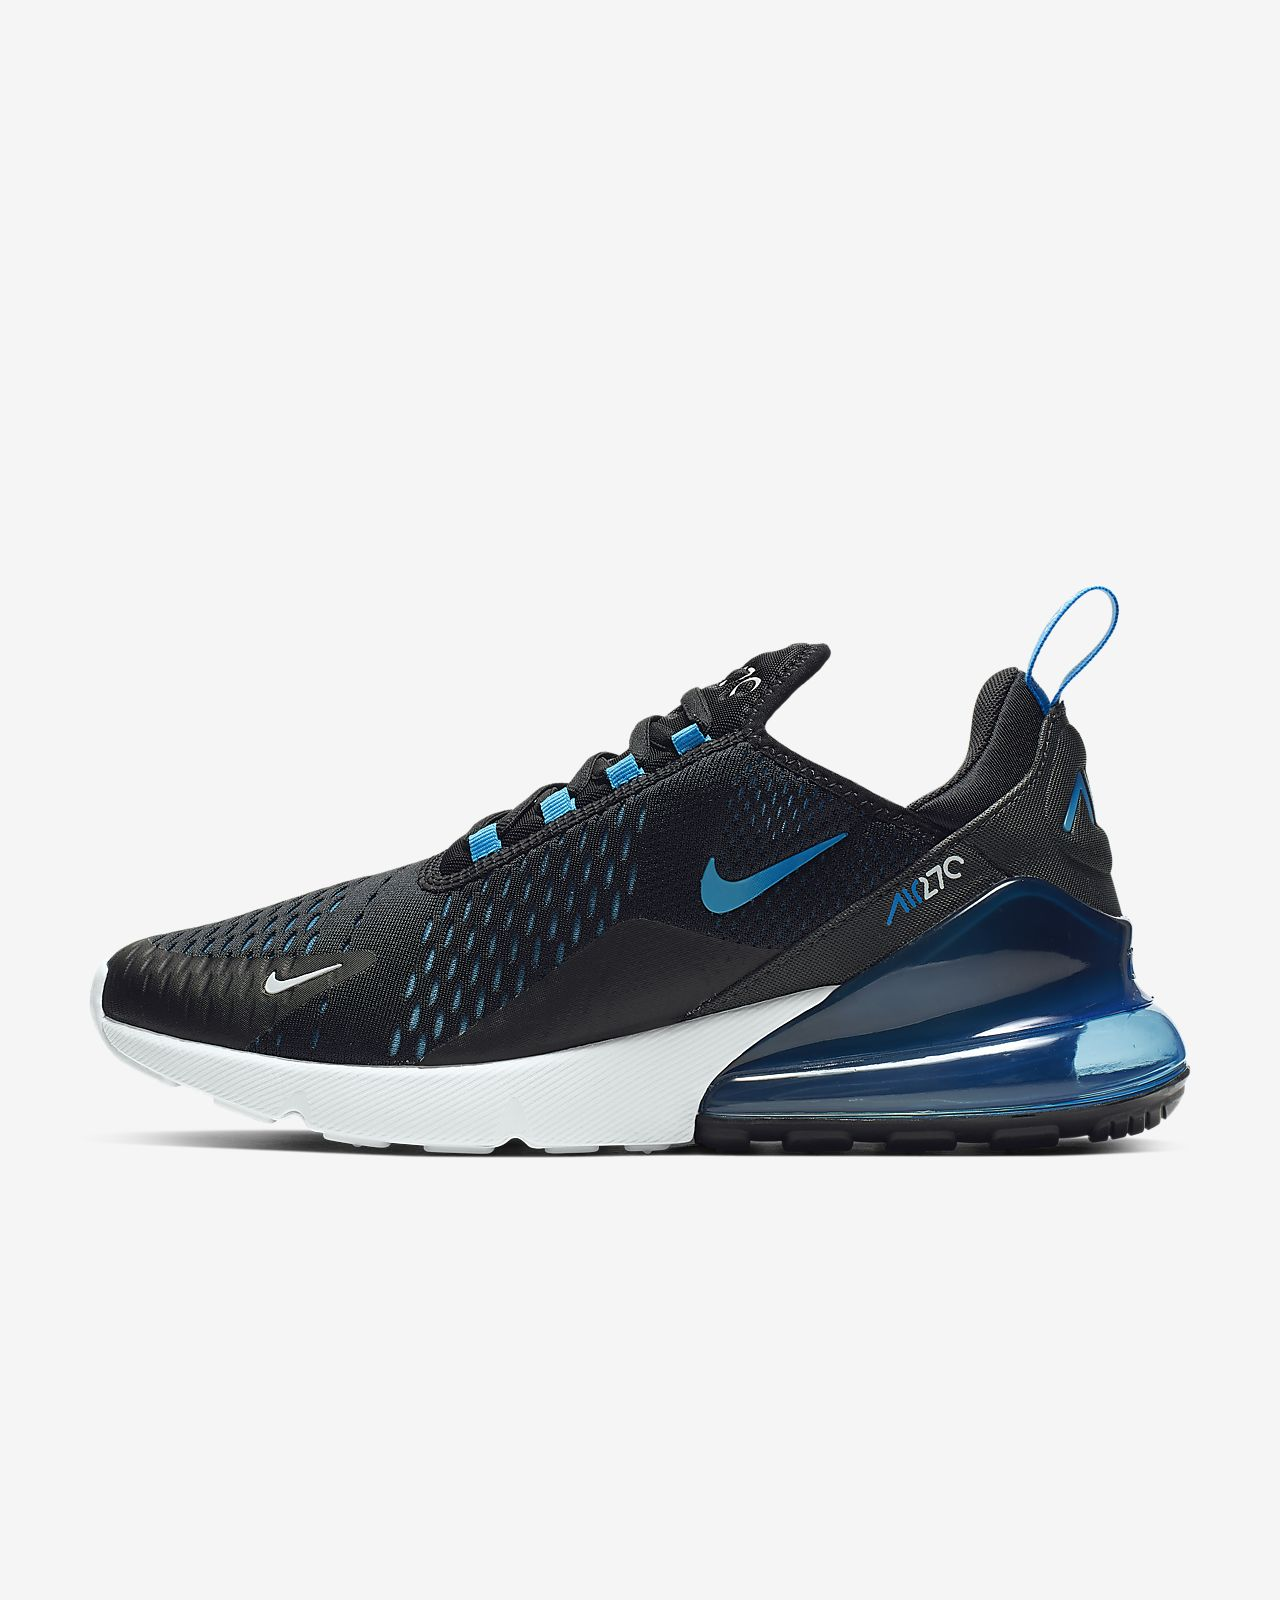 low priced cbbe6 8ee9c ... Buty męskie Nike Air Max 270